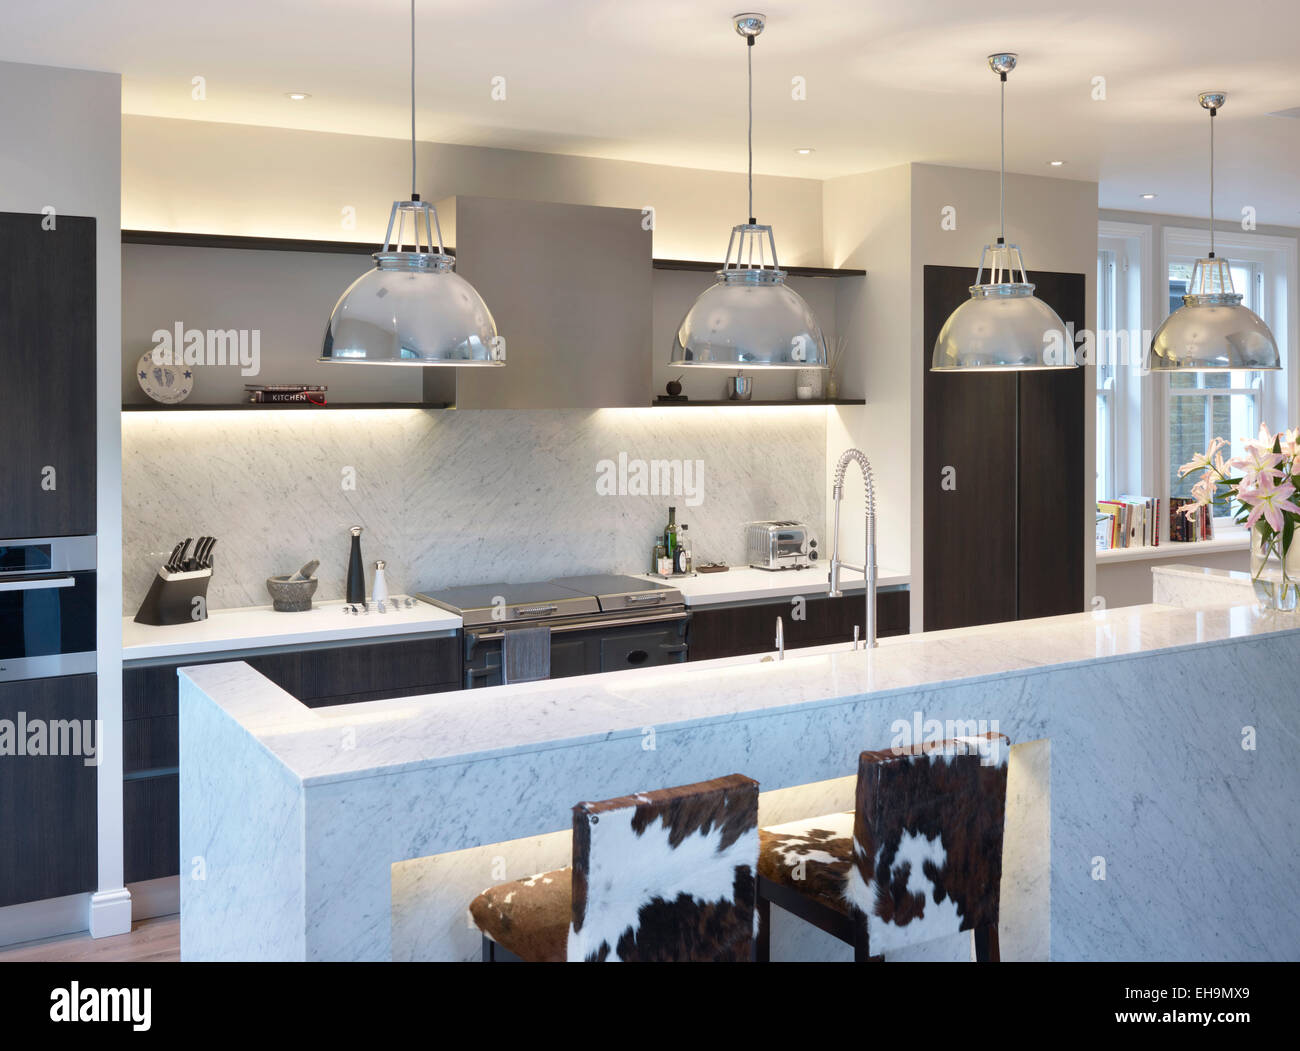 Modern Kitchen With Pendant Lights Above Island Unit Residential - Pendulum lights over island